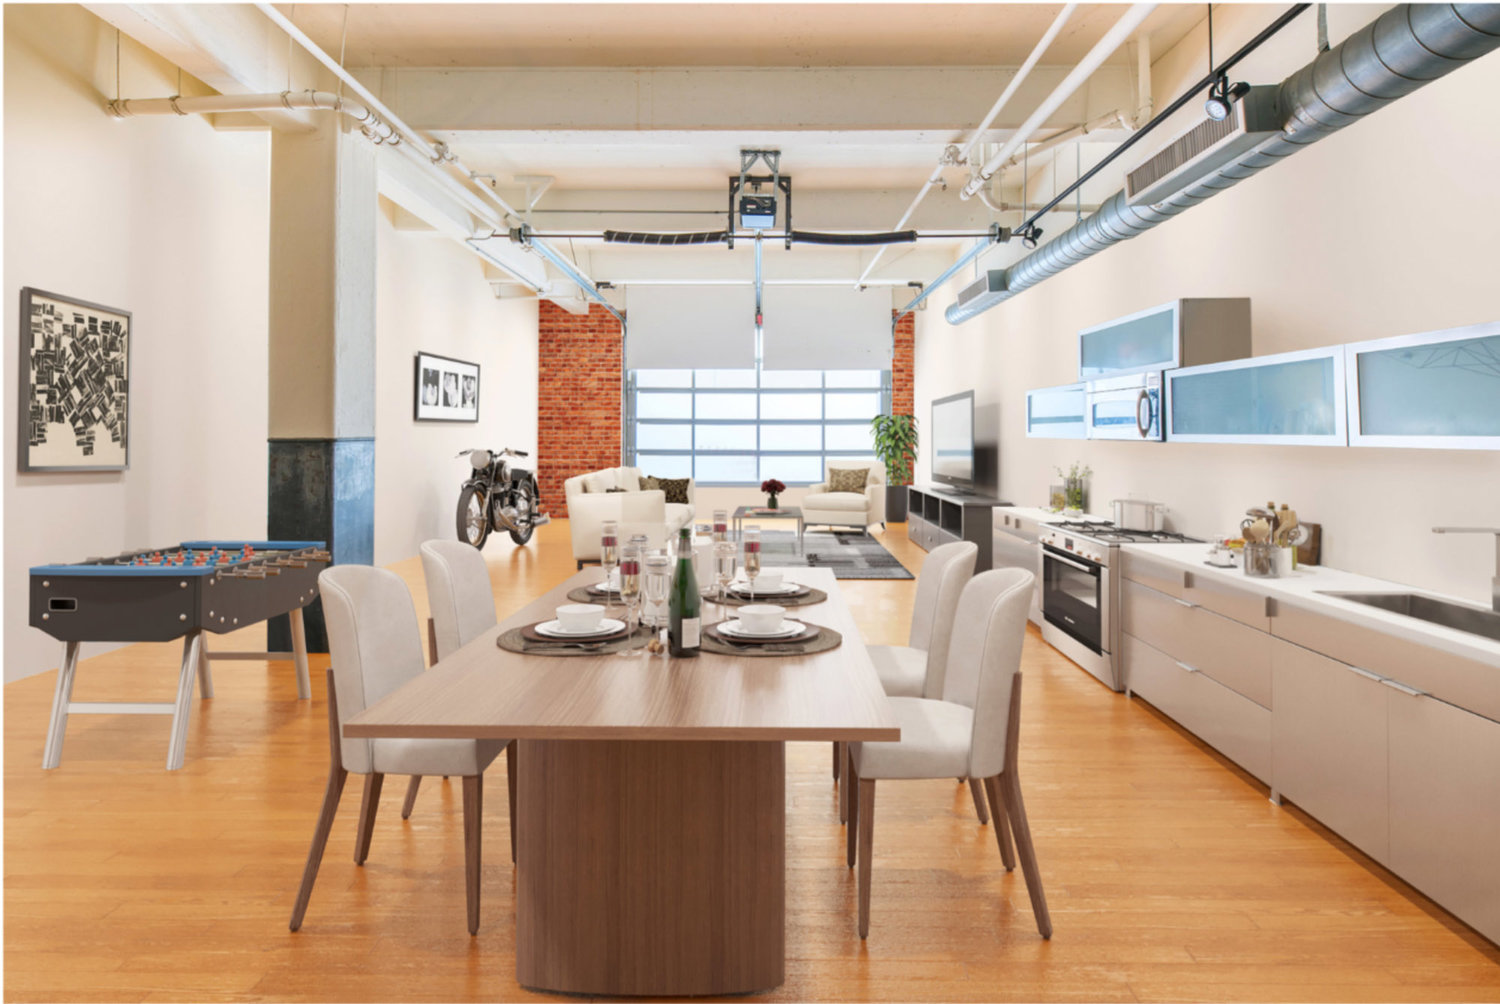 Modern loft 1850 industrial street unit 110 los angeles 899000 pier to pier brokers real estate listings agents homes for sale videos